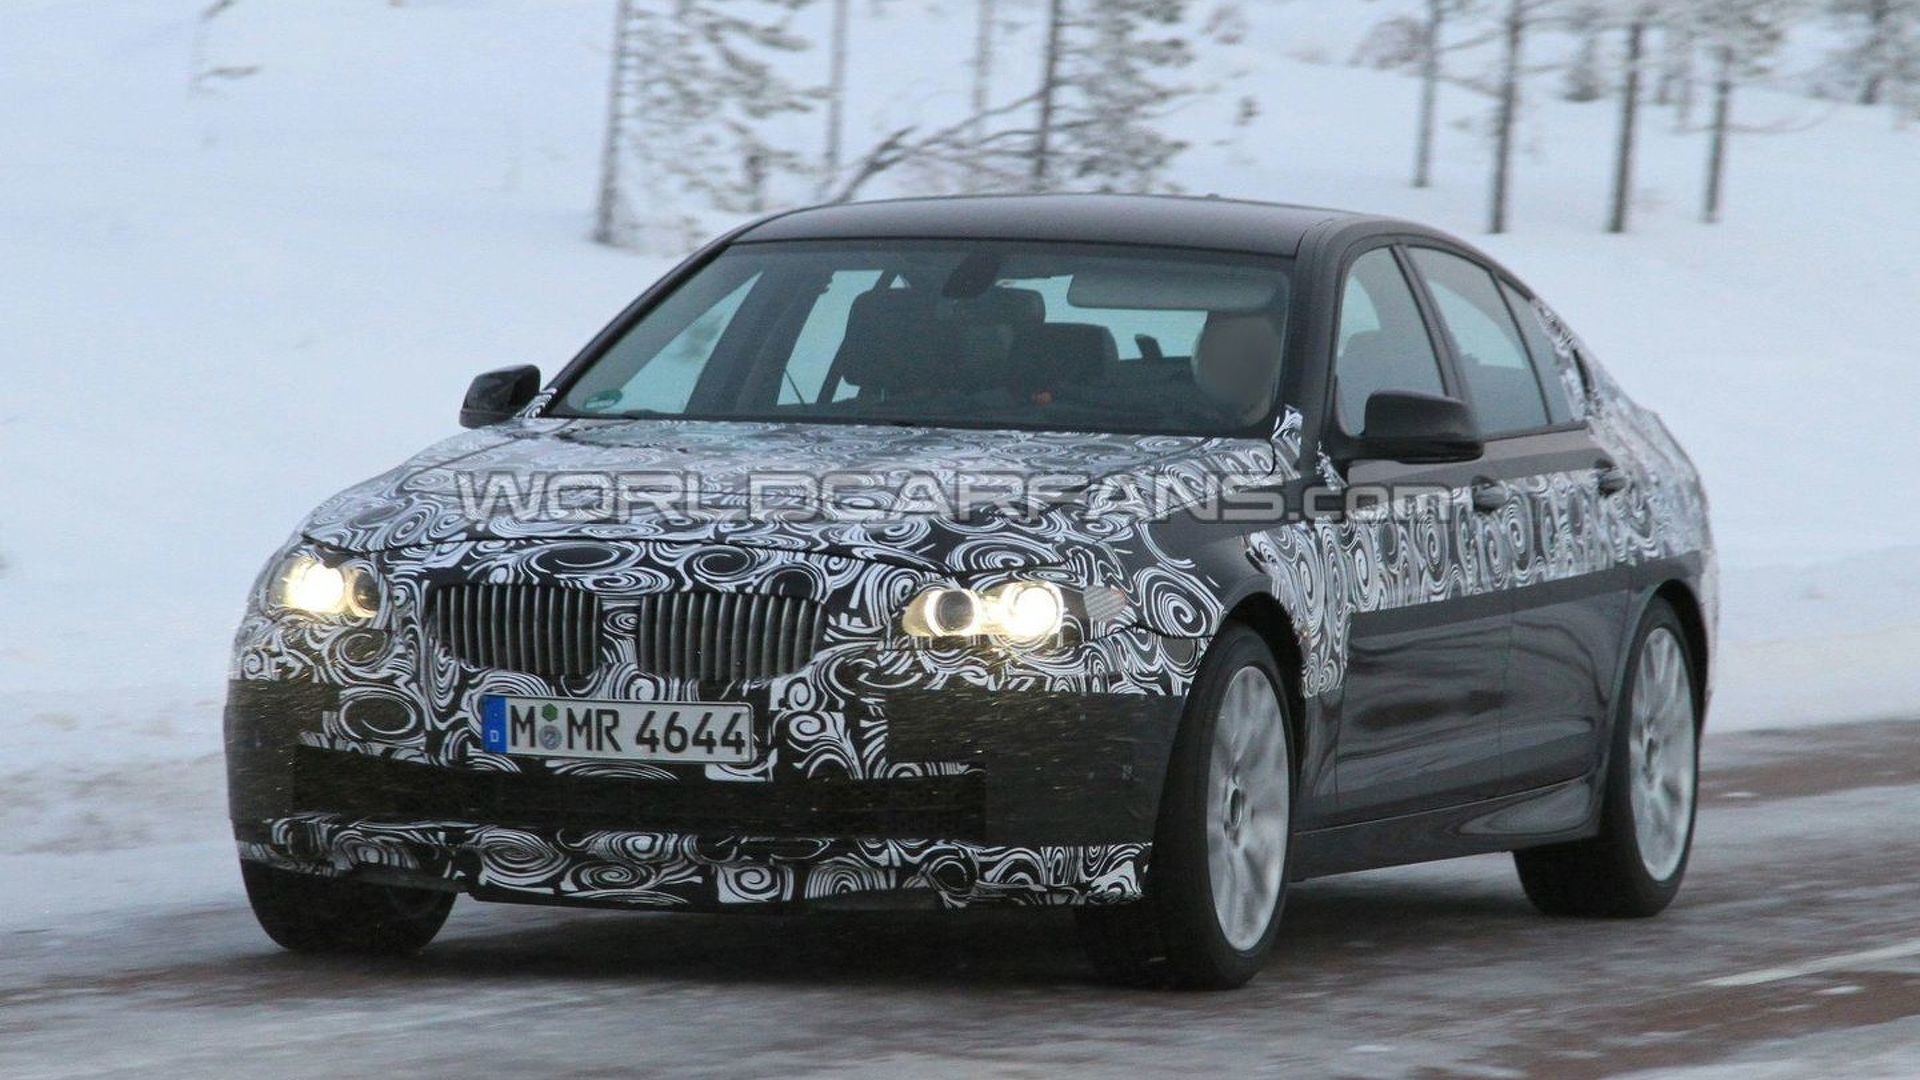 New M5 teaser vid - 2012 BMW F10 M5 in a snowy landscape [video]